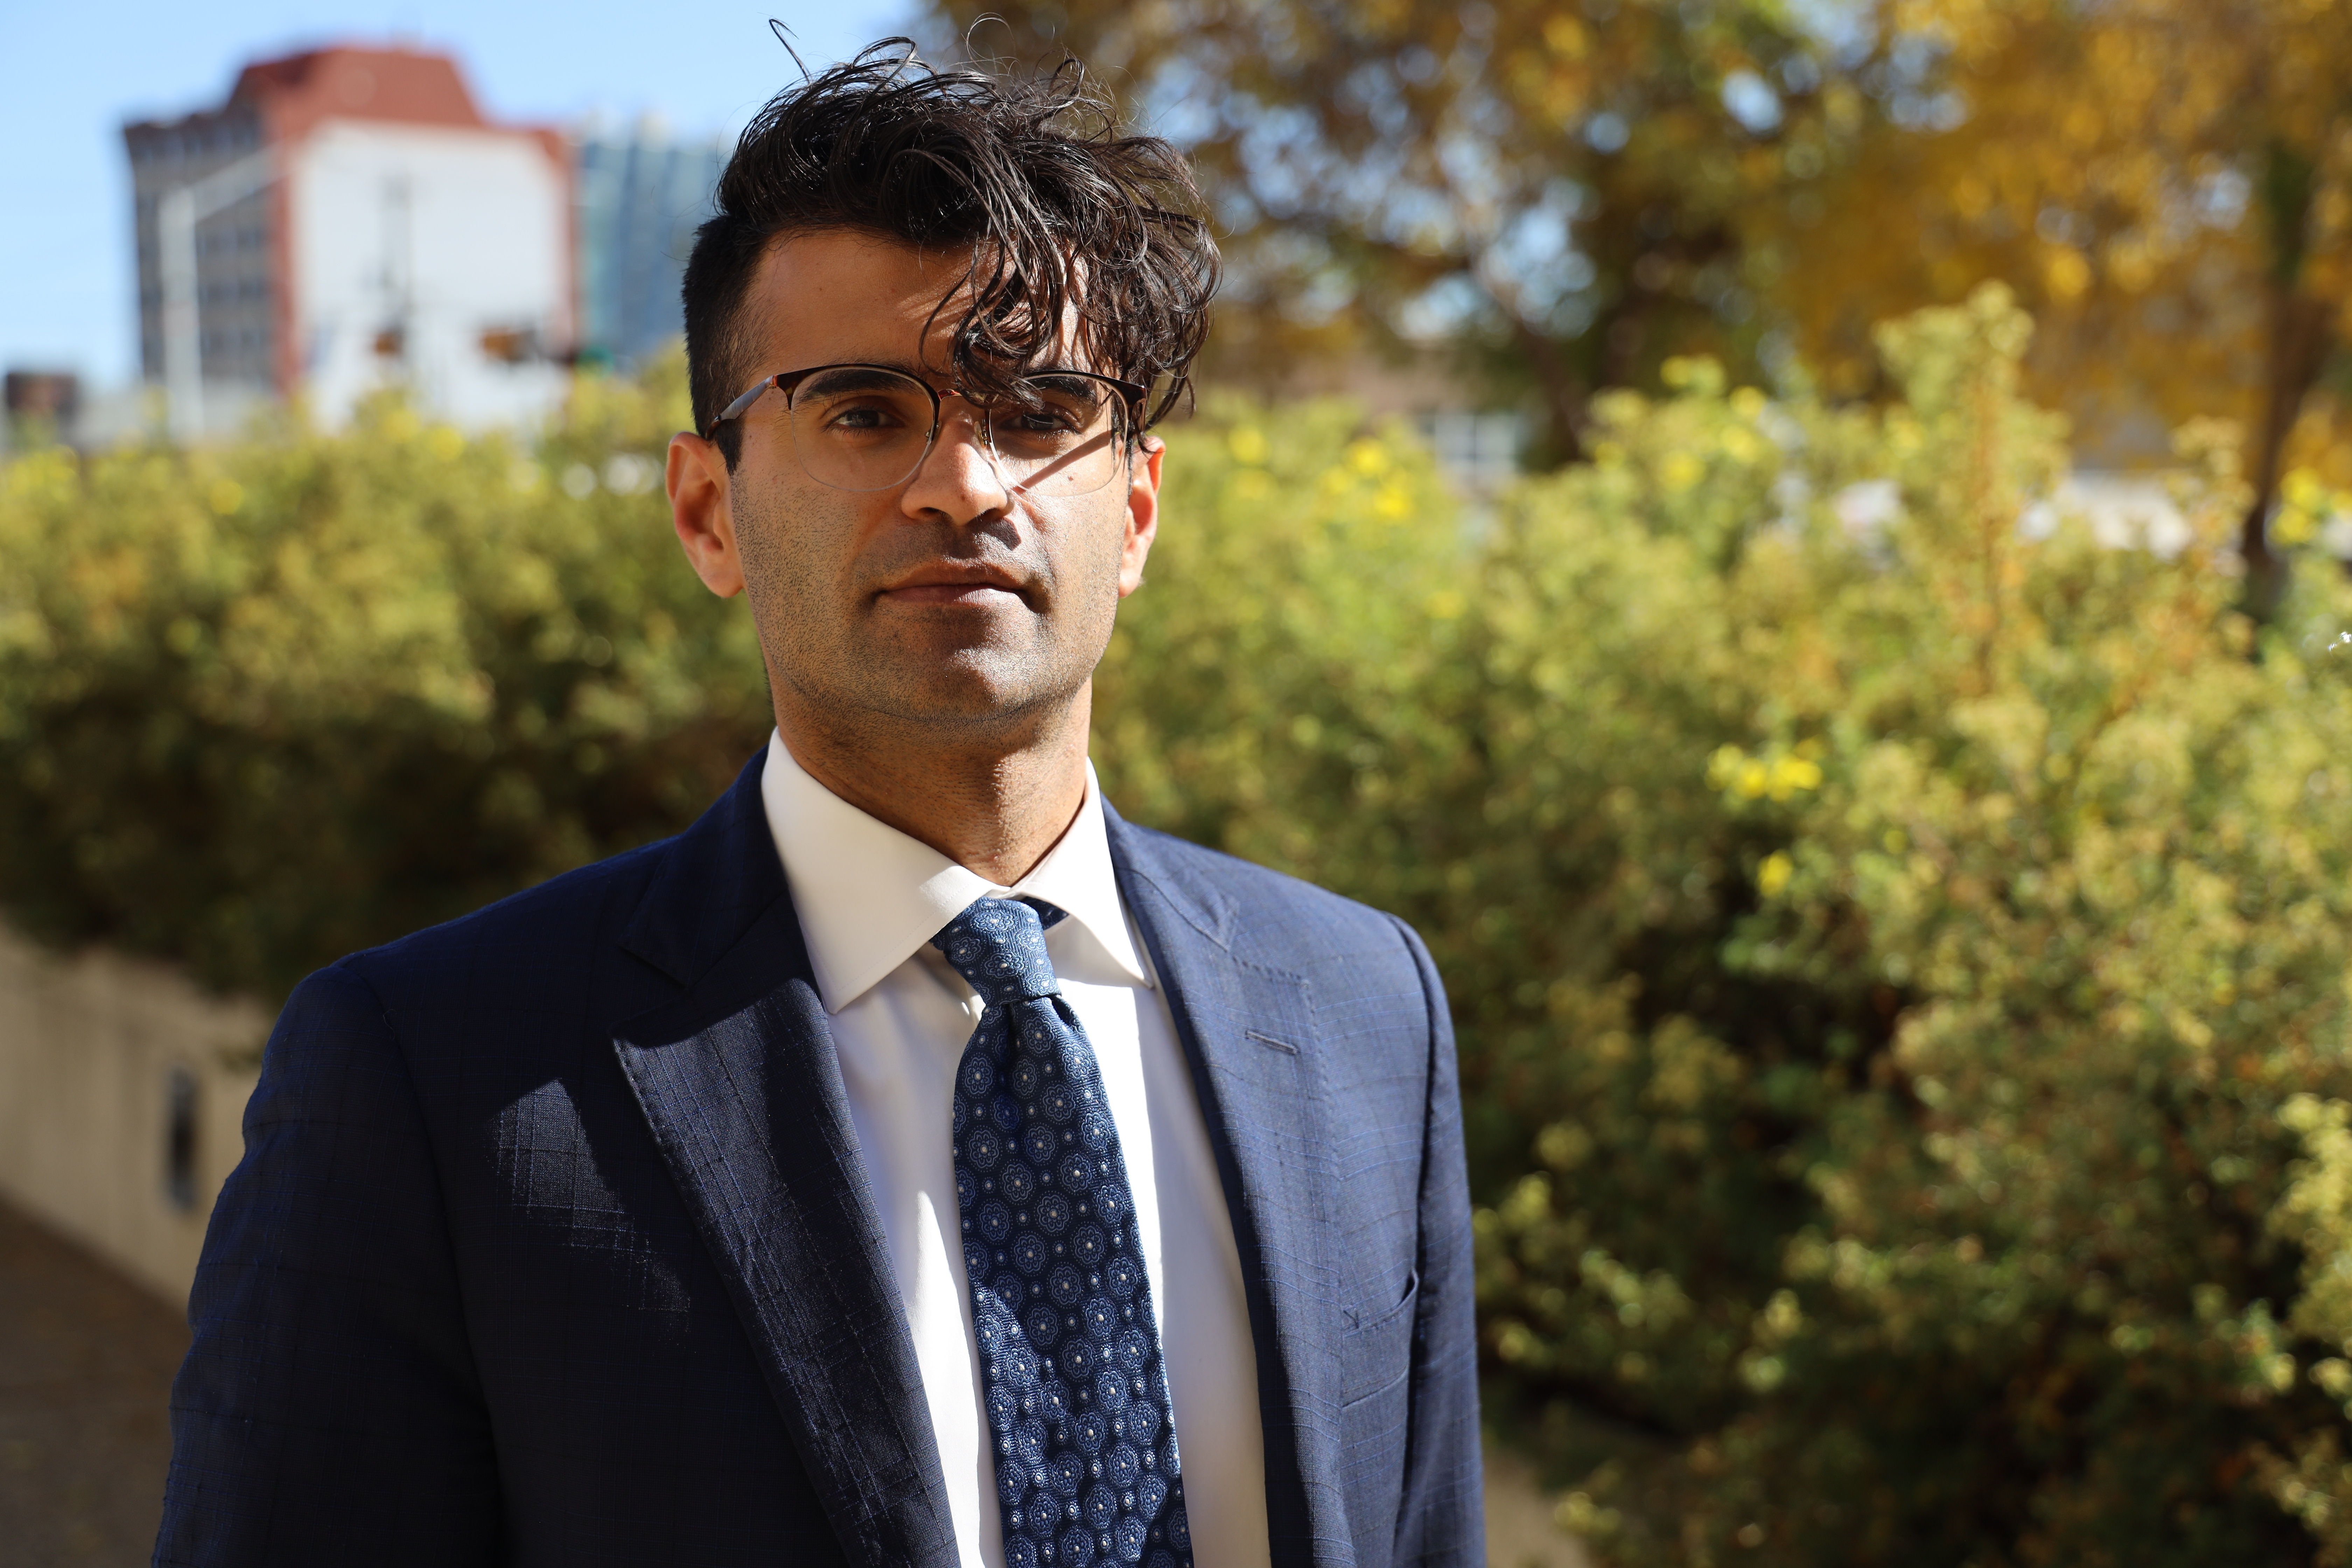 Avnish Nanda is an Edmonton-based lawyer. He is representing the men who allege they were abused by Dominey in a civil case in Edmonton's Court of Queen's Bench. (Sam Martin/CBC)